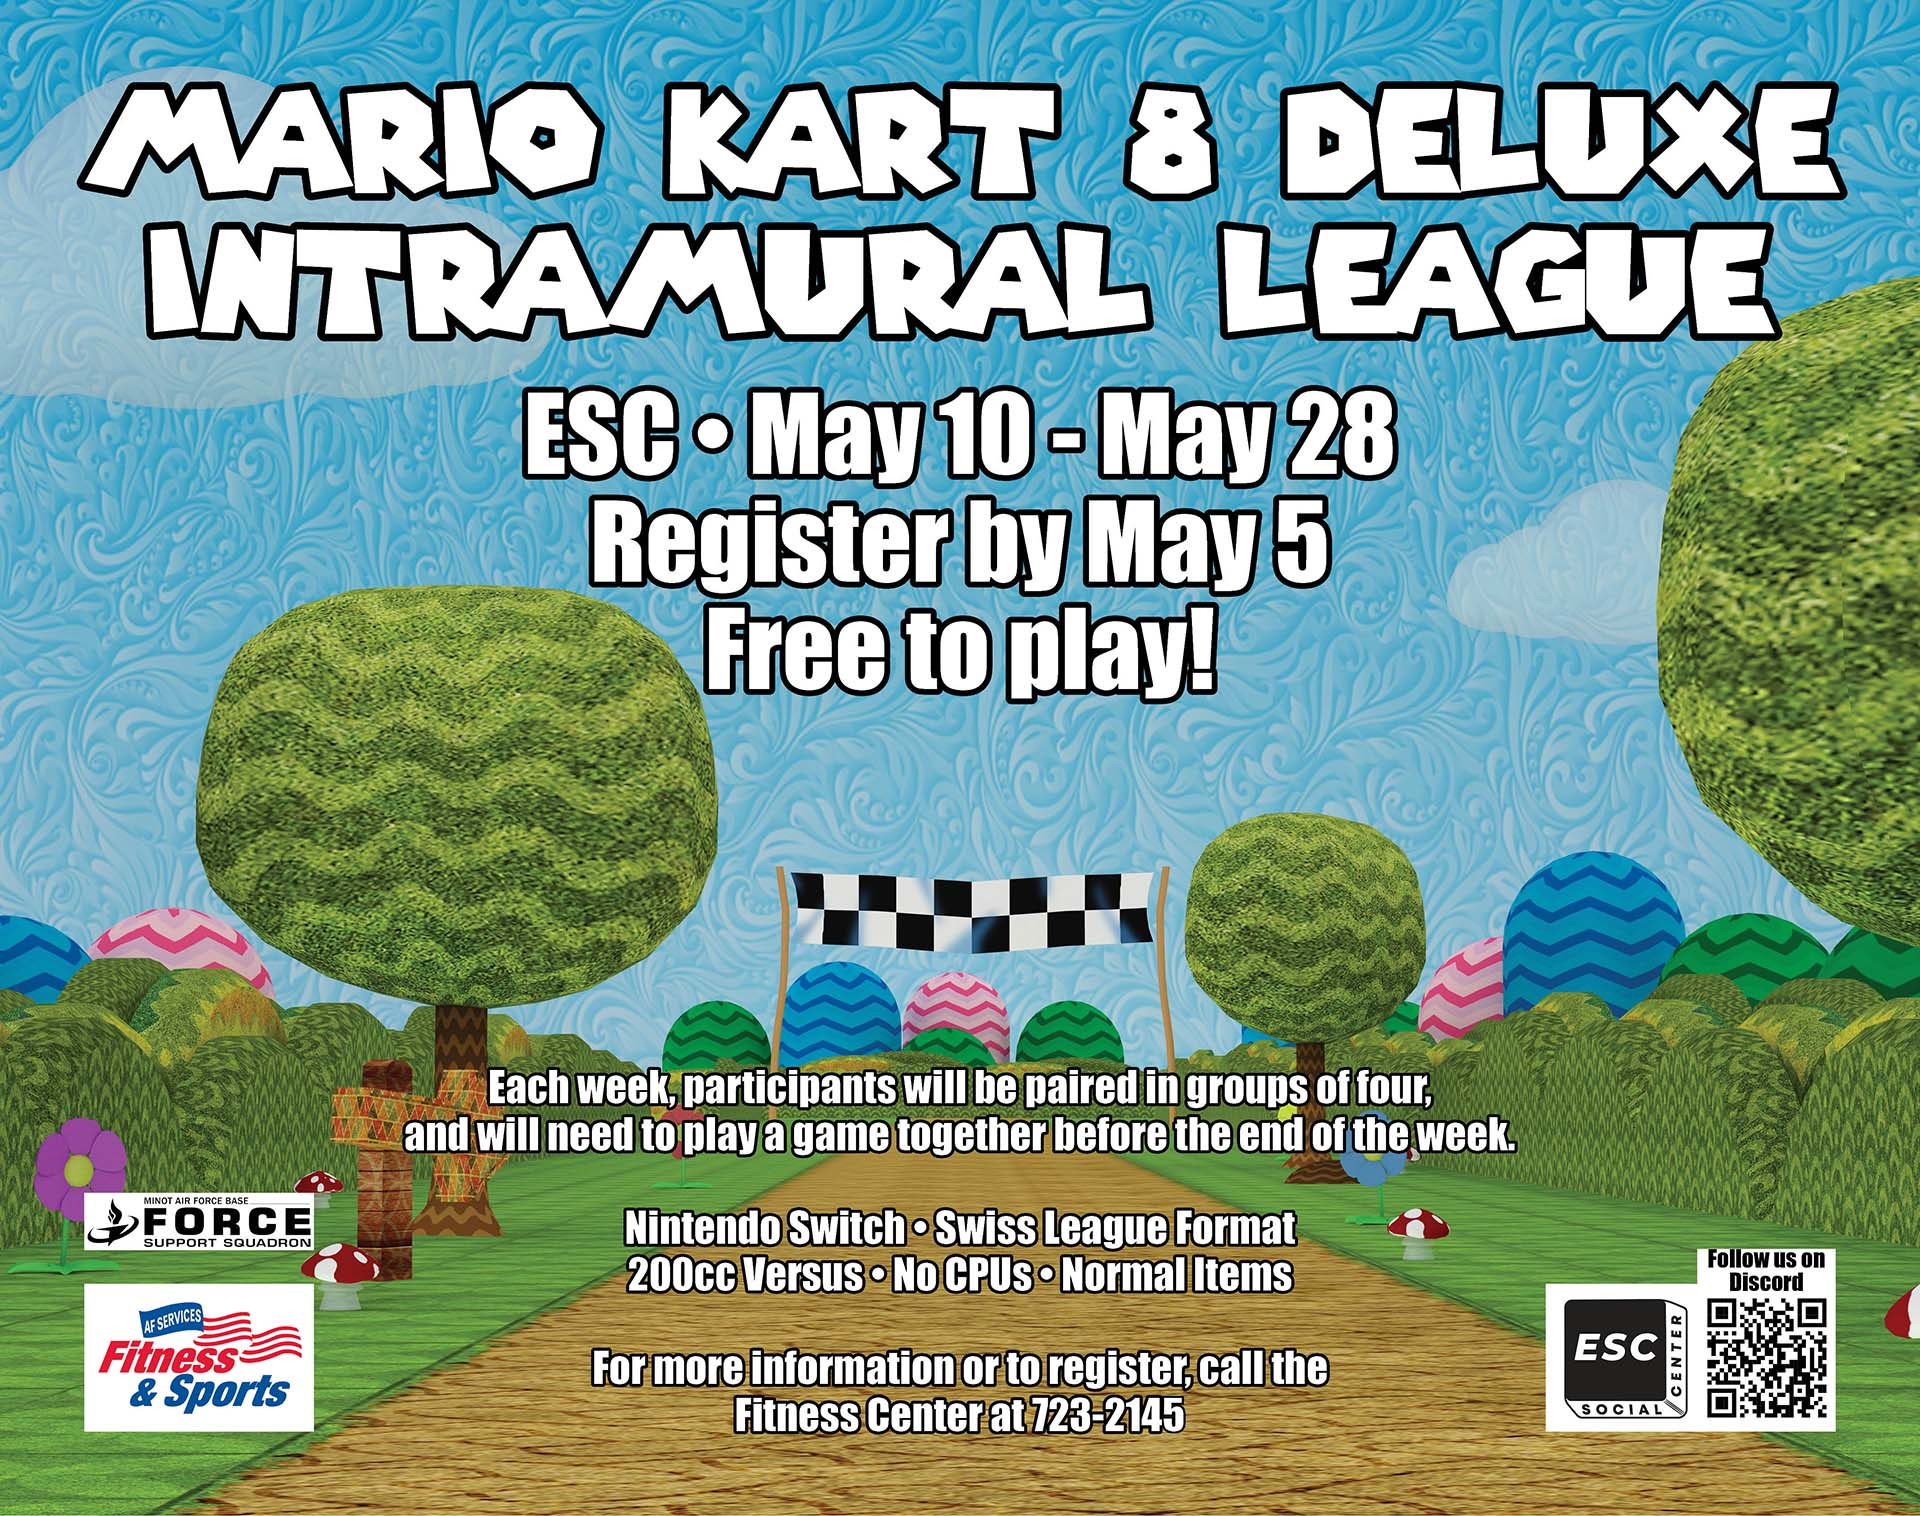 05.10-05.28 Mario Kart 8 Deluxe Intramural League